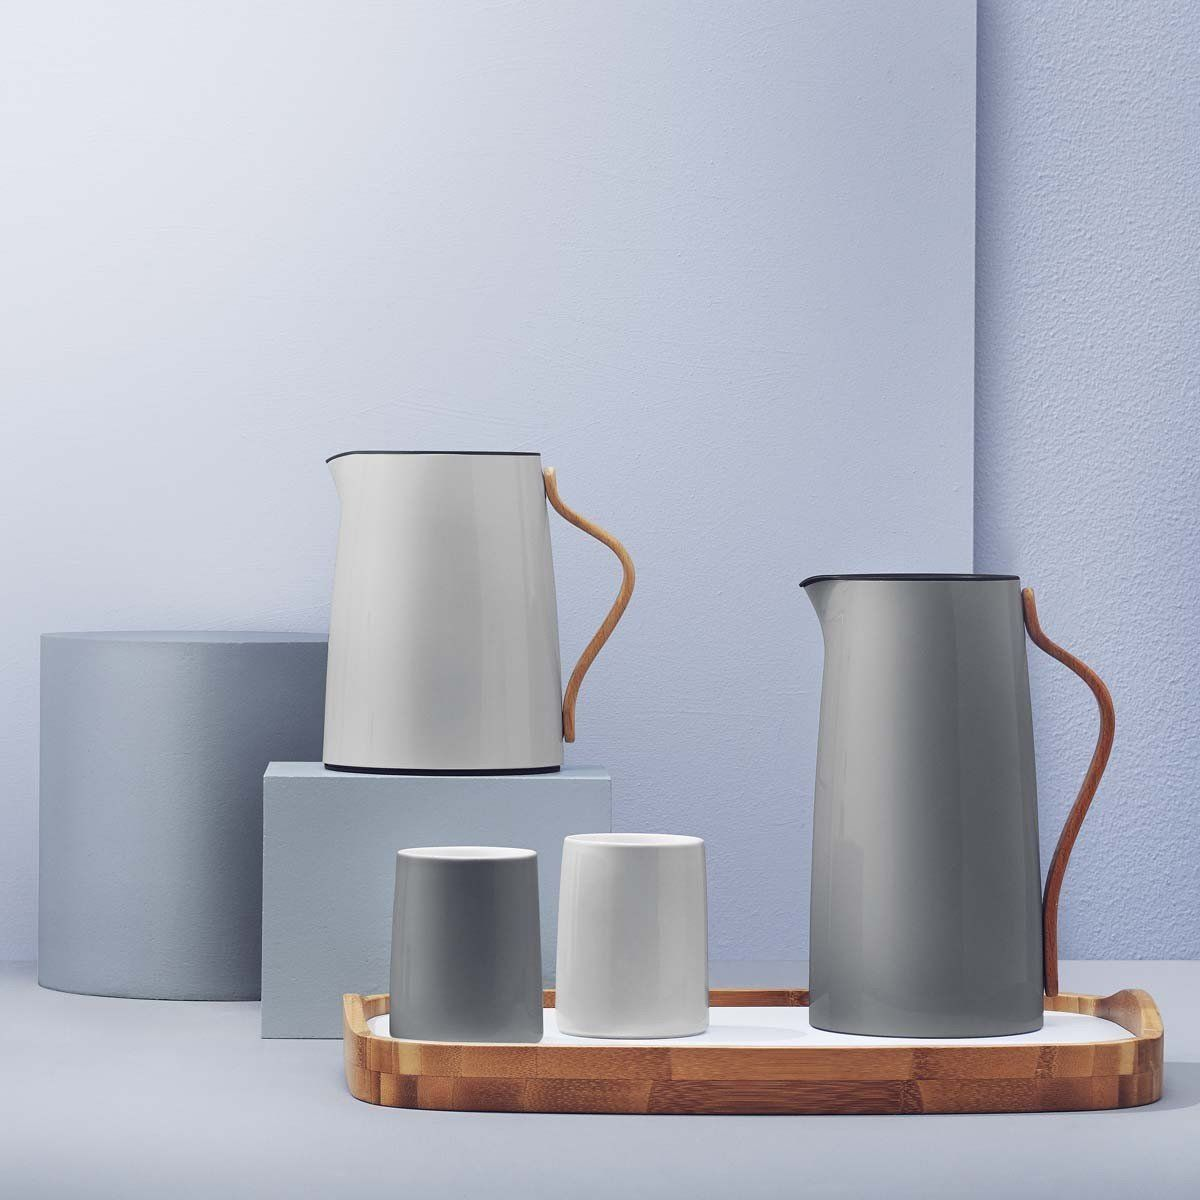 #Raumidee des Tages: Die #Farbkombination von Blau und Grau ist doch immer erfrischend 🌻 ► https://www.amazon.de/Stelton-x-201-Emma-Isolierkanne-Kunststoff/dp/B00ESGGLWI/?_encoding=UTF8&camp=1638&creative=6742&linkCode=ur2&qid=1488371343&s=kitchen&site-redirect=de&sr=1-33&tag=raumideen-21